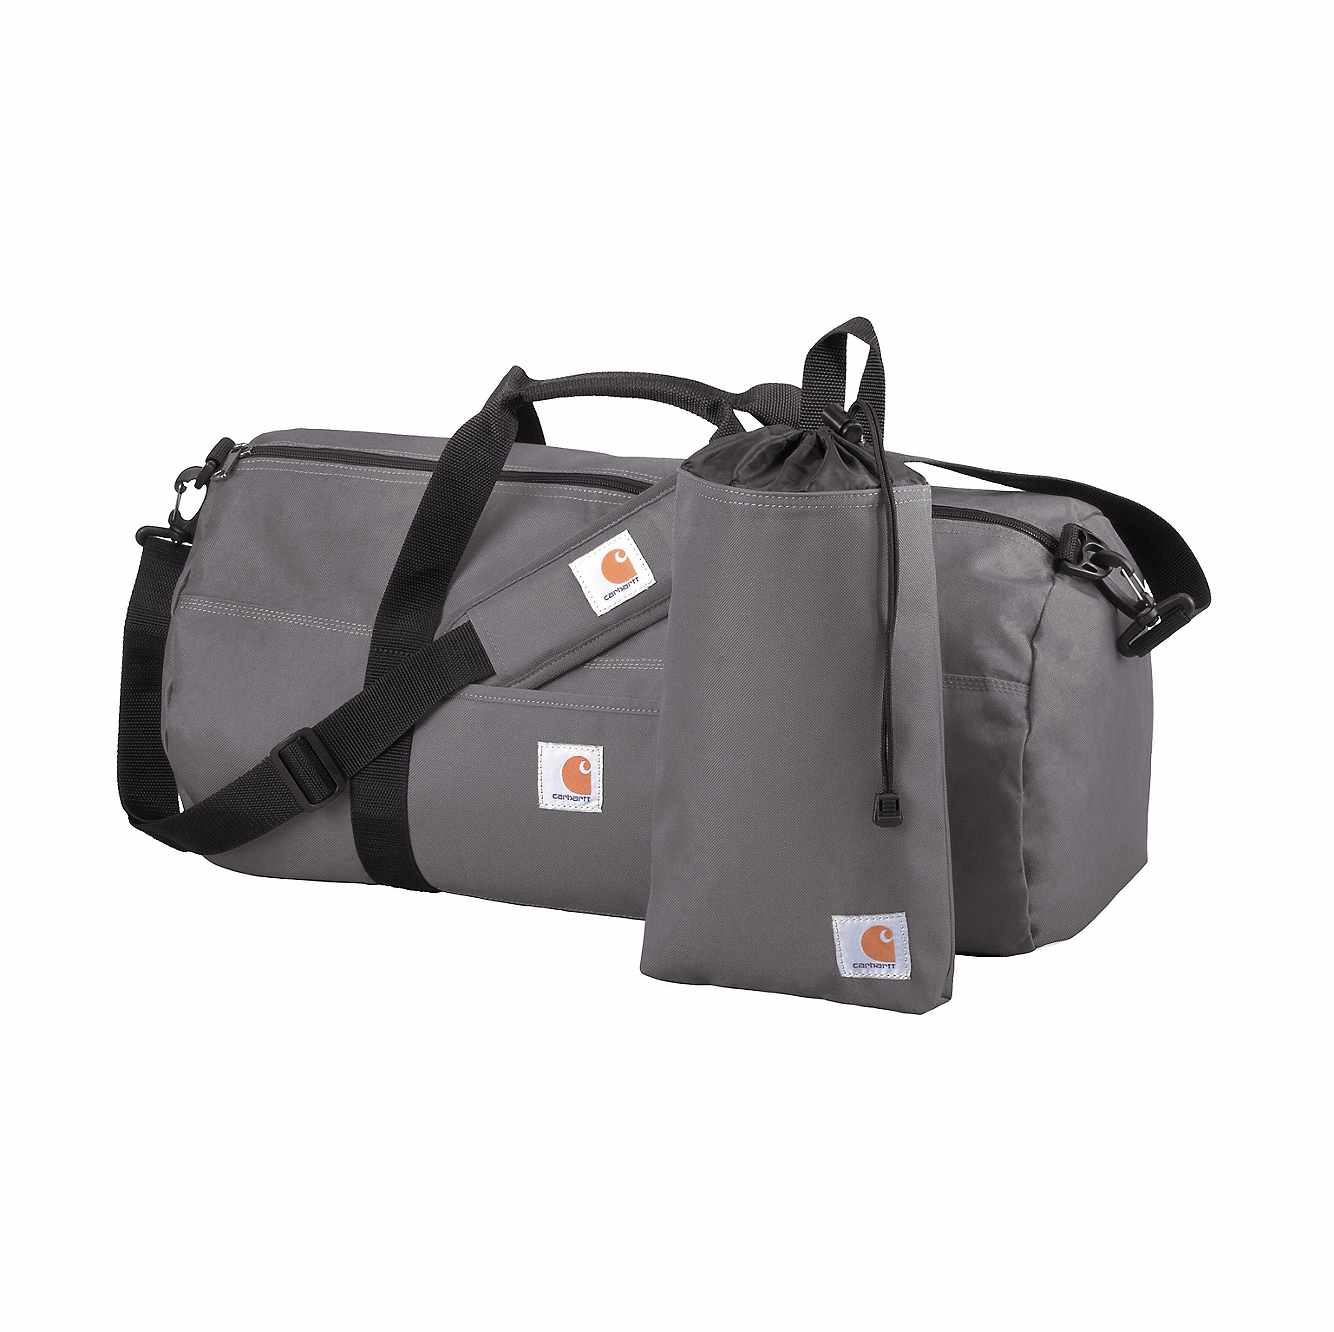 Picture of Trade Medium Duffel + Utility pouch in Gray